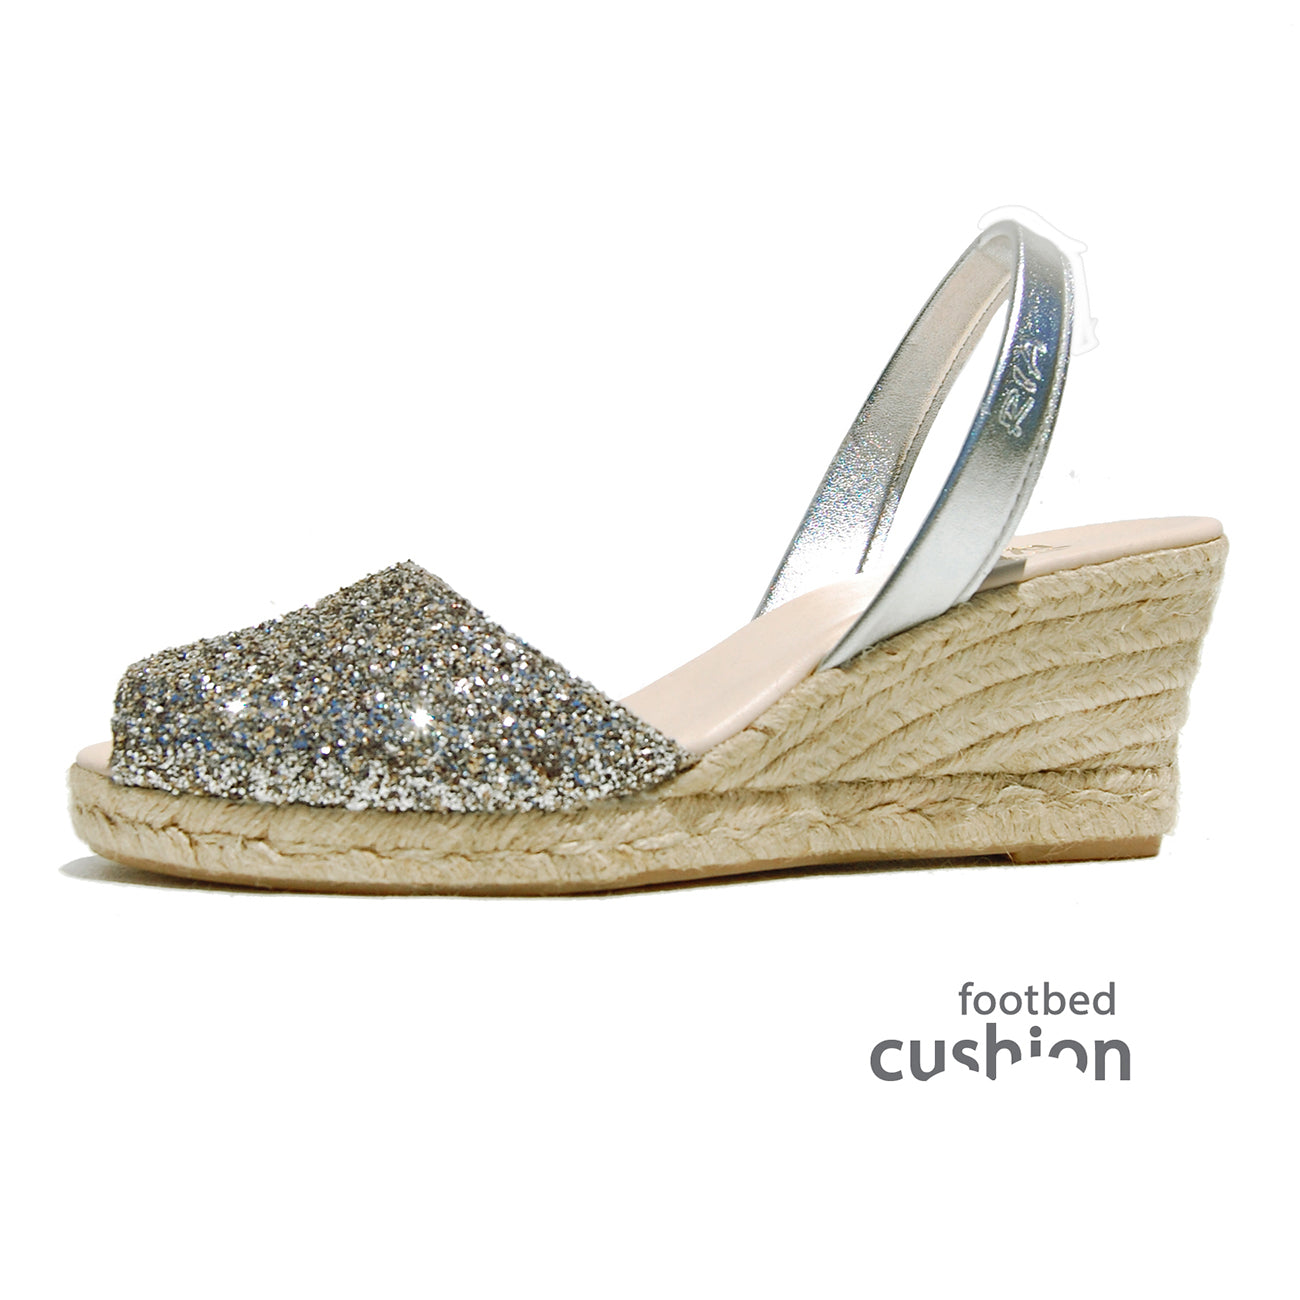 Ria Avarcas Espadrille Wedge Pewter Glitter Sideview C.jpg